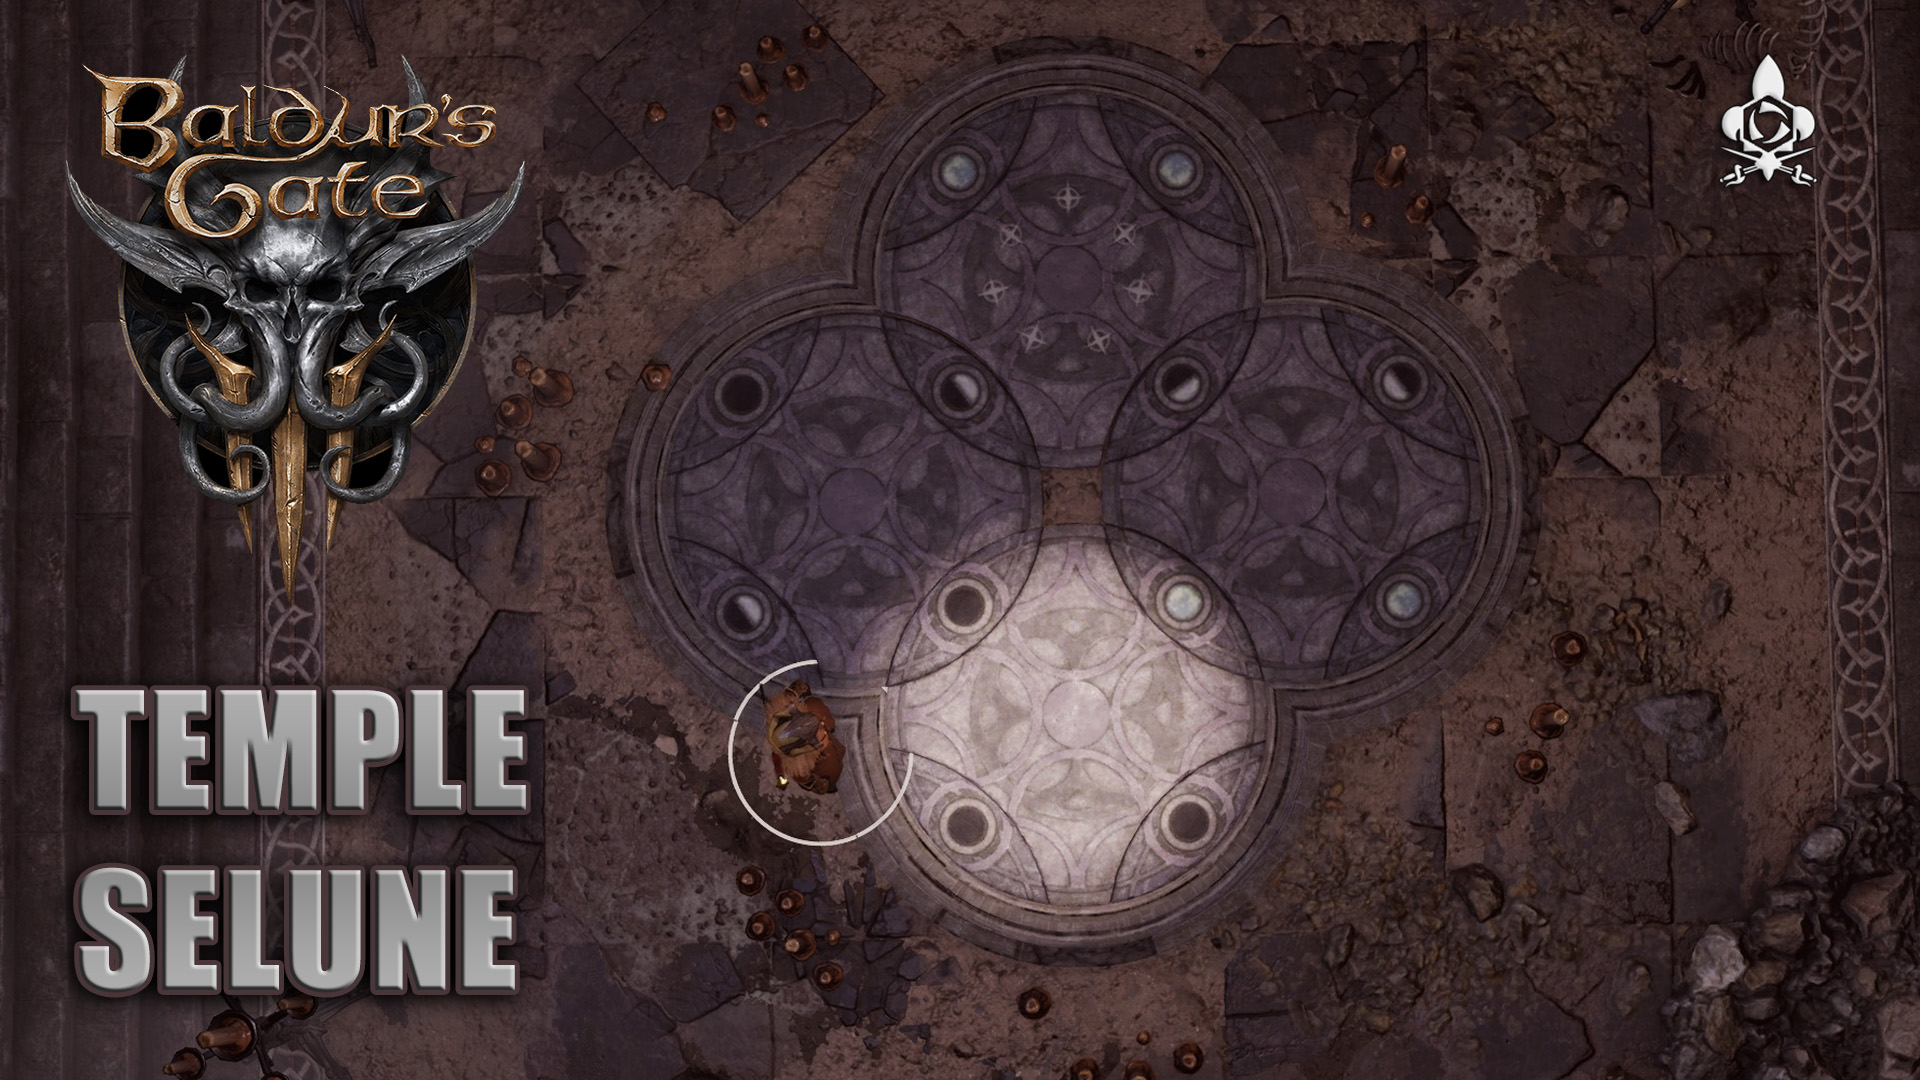 Temple of the Moon) Selune access and solve the puzzle